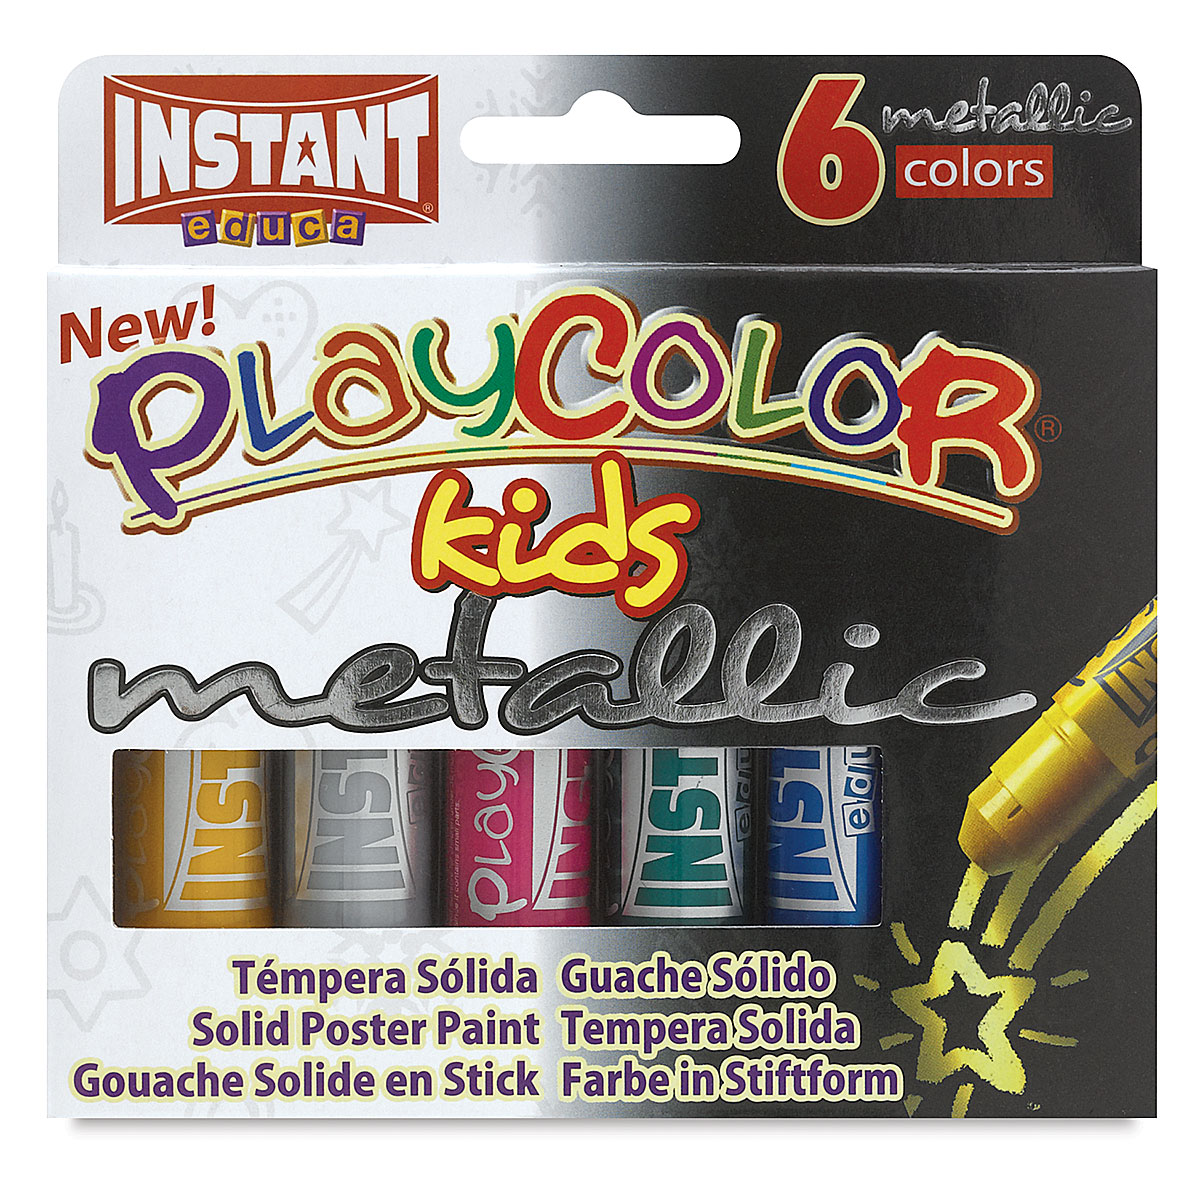 Playcolor - Metallic Colors, Set of 6, Standard Size